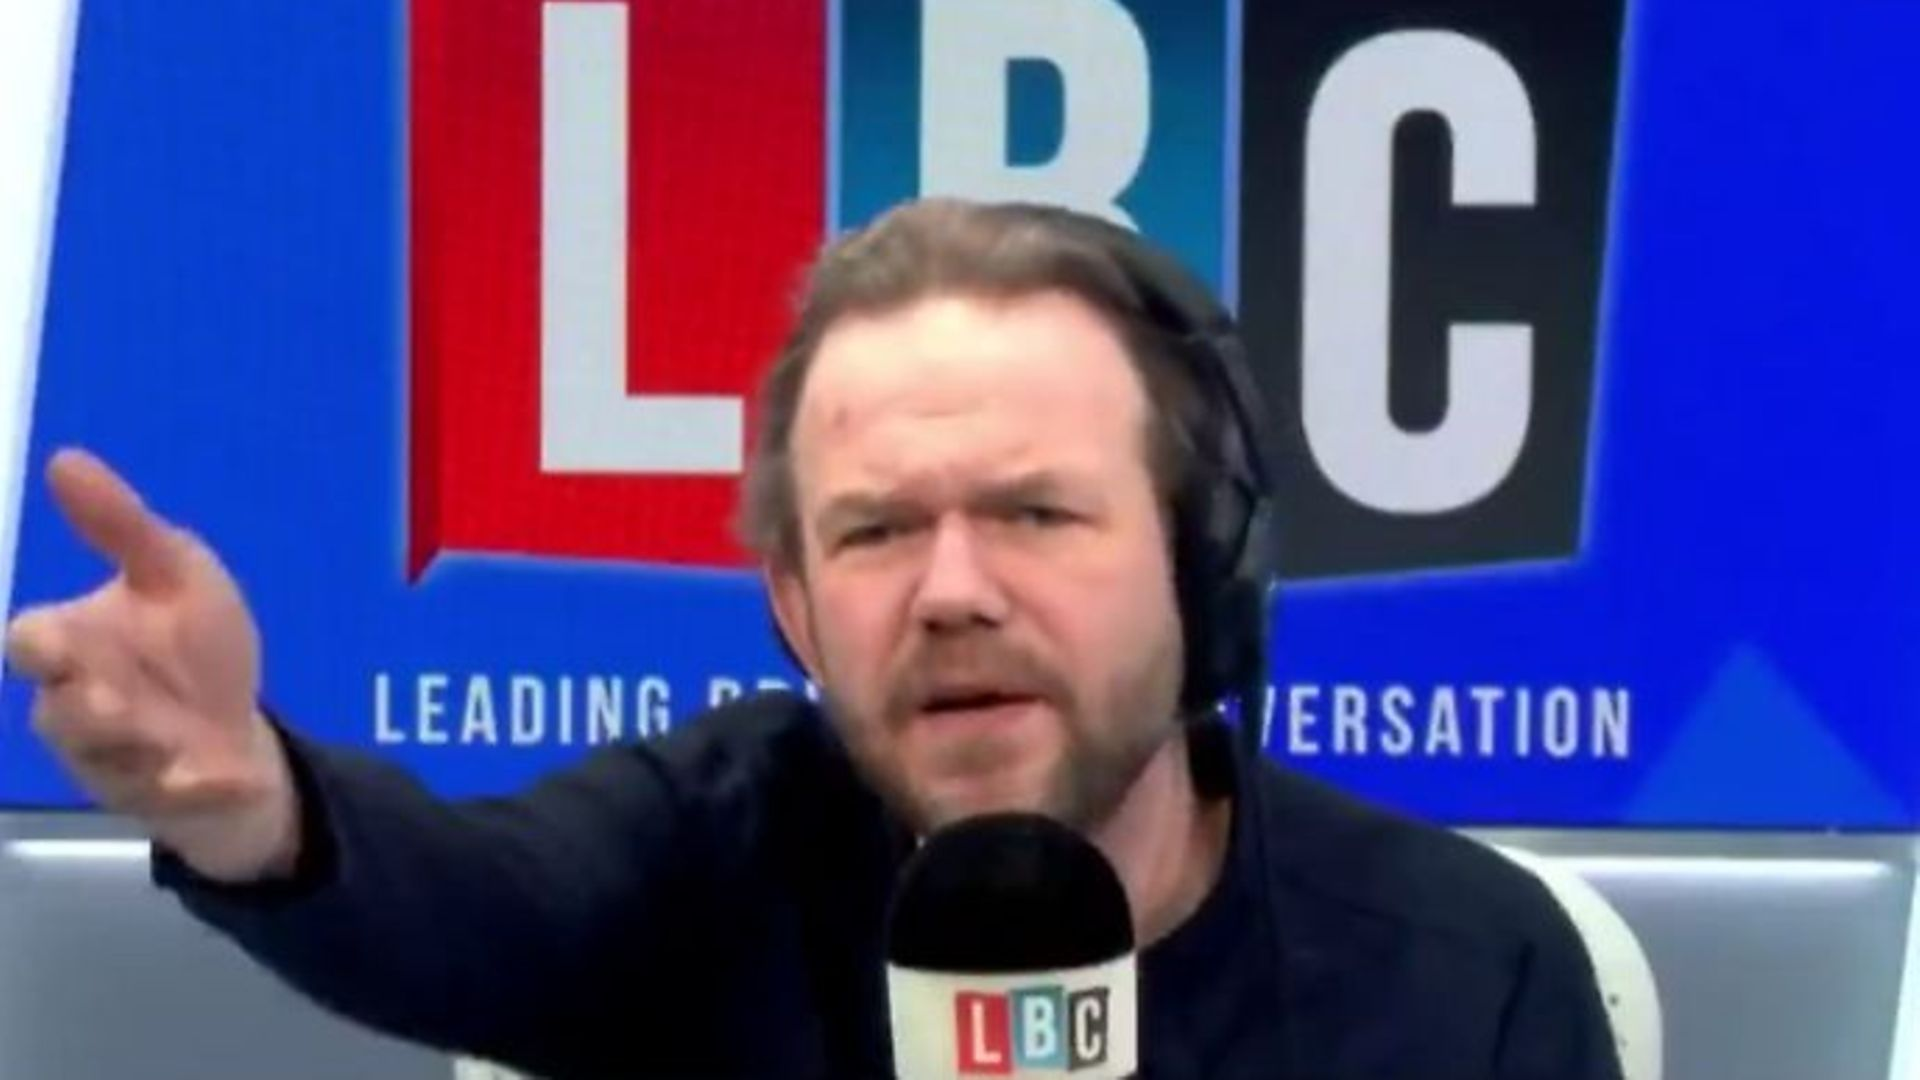 """James O'Brien said the EU's decision to impose Article 16 of the Northern Ireland Protocol had been """"downright dangerous"""" - Credit: LBC, Twitter"""